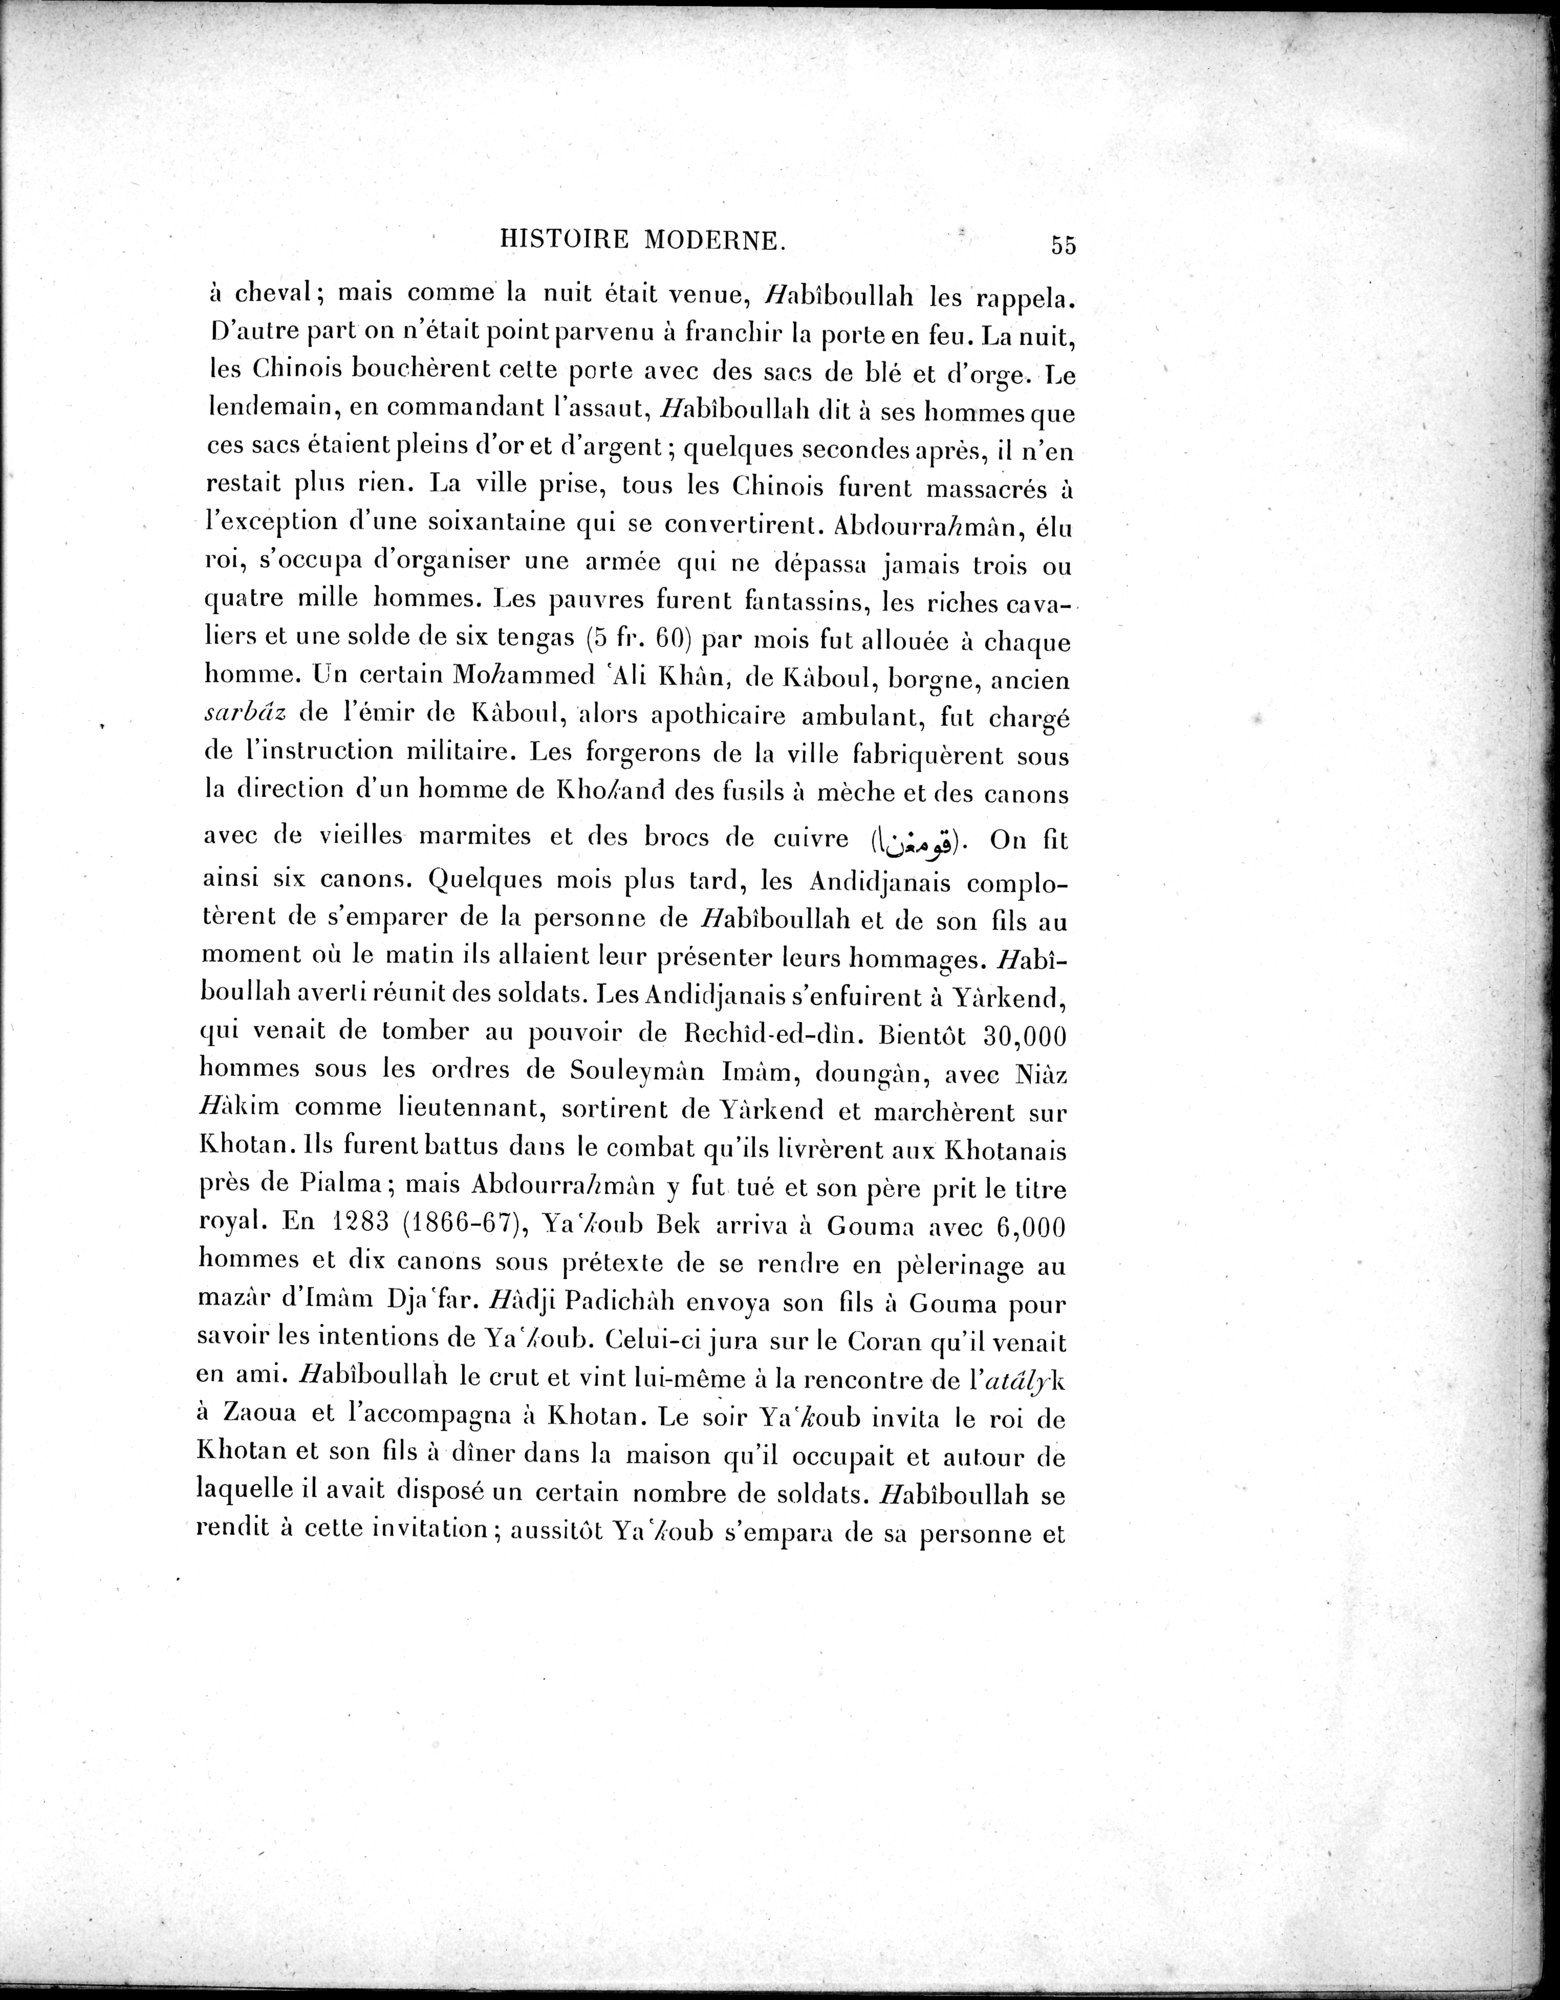 Mission Scientifique dans la Haute Asie 1890-1895 : vol.3 / Page 65 (Grayscale High Resolution Image)